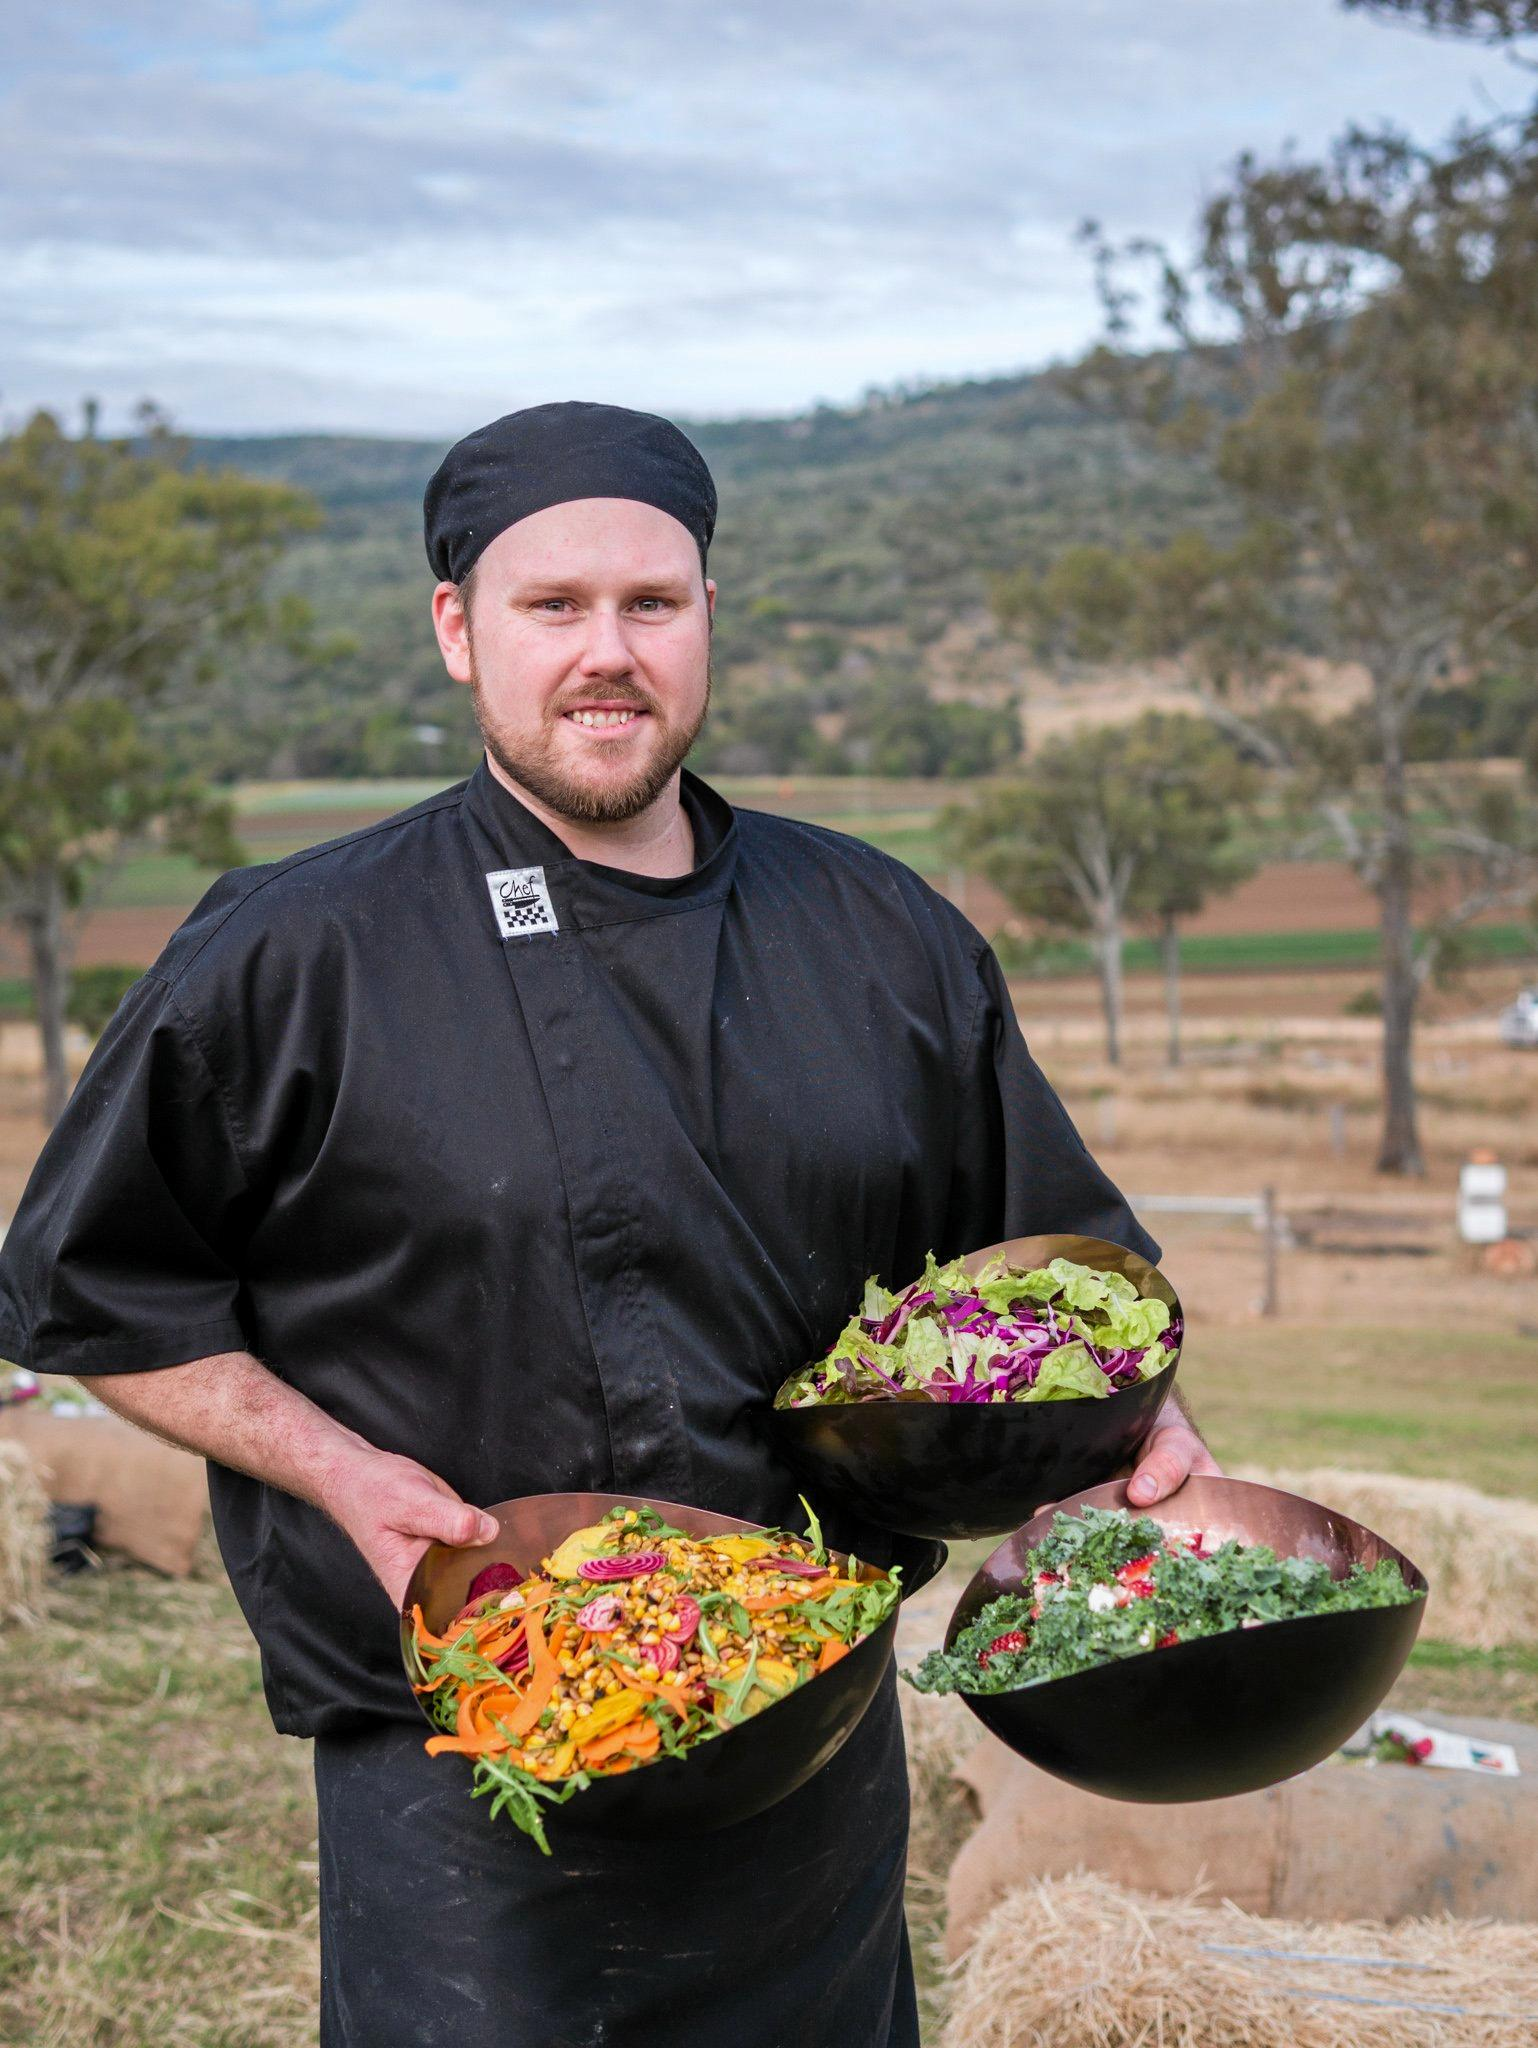 Eat Local Week served up an array of tasty dishes featuring local produce. Chef Matt plated up plenty of delicious meals at the Eat Local Week event, An Afternoon at Valley Pride Produce.